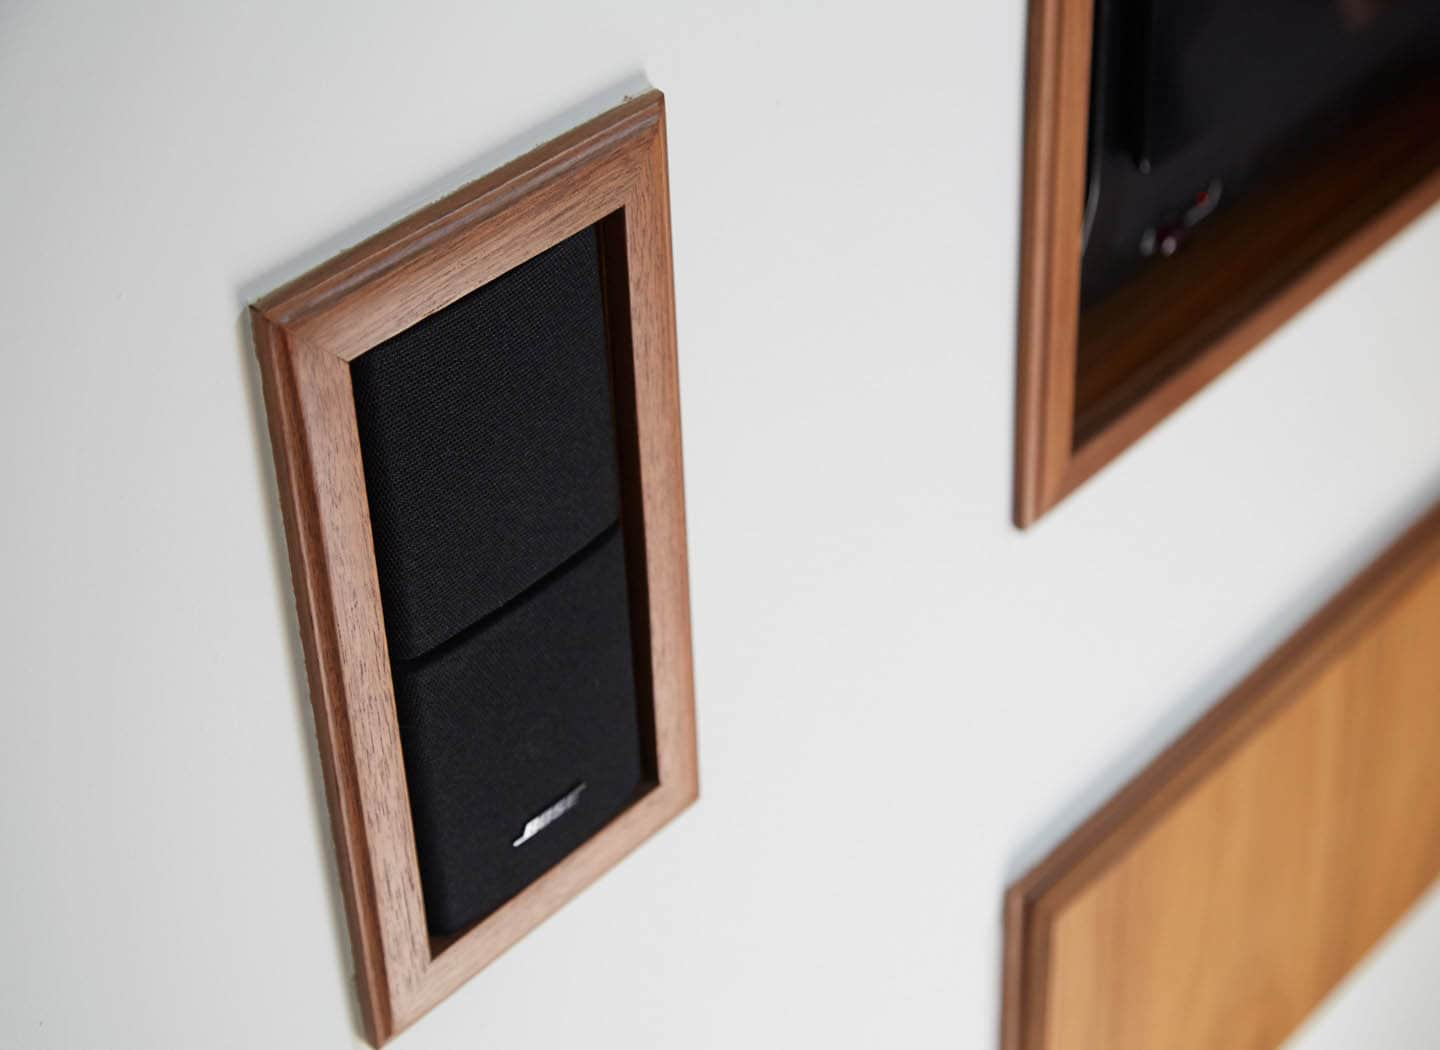 Close up detail of integrated speakers